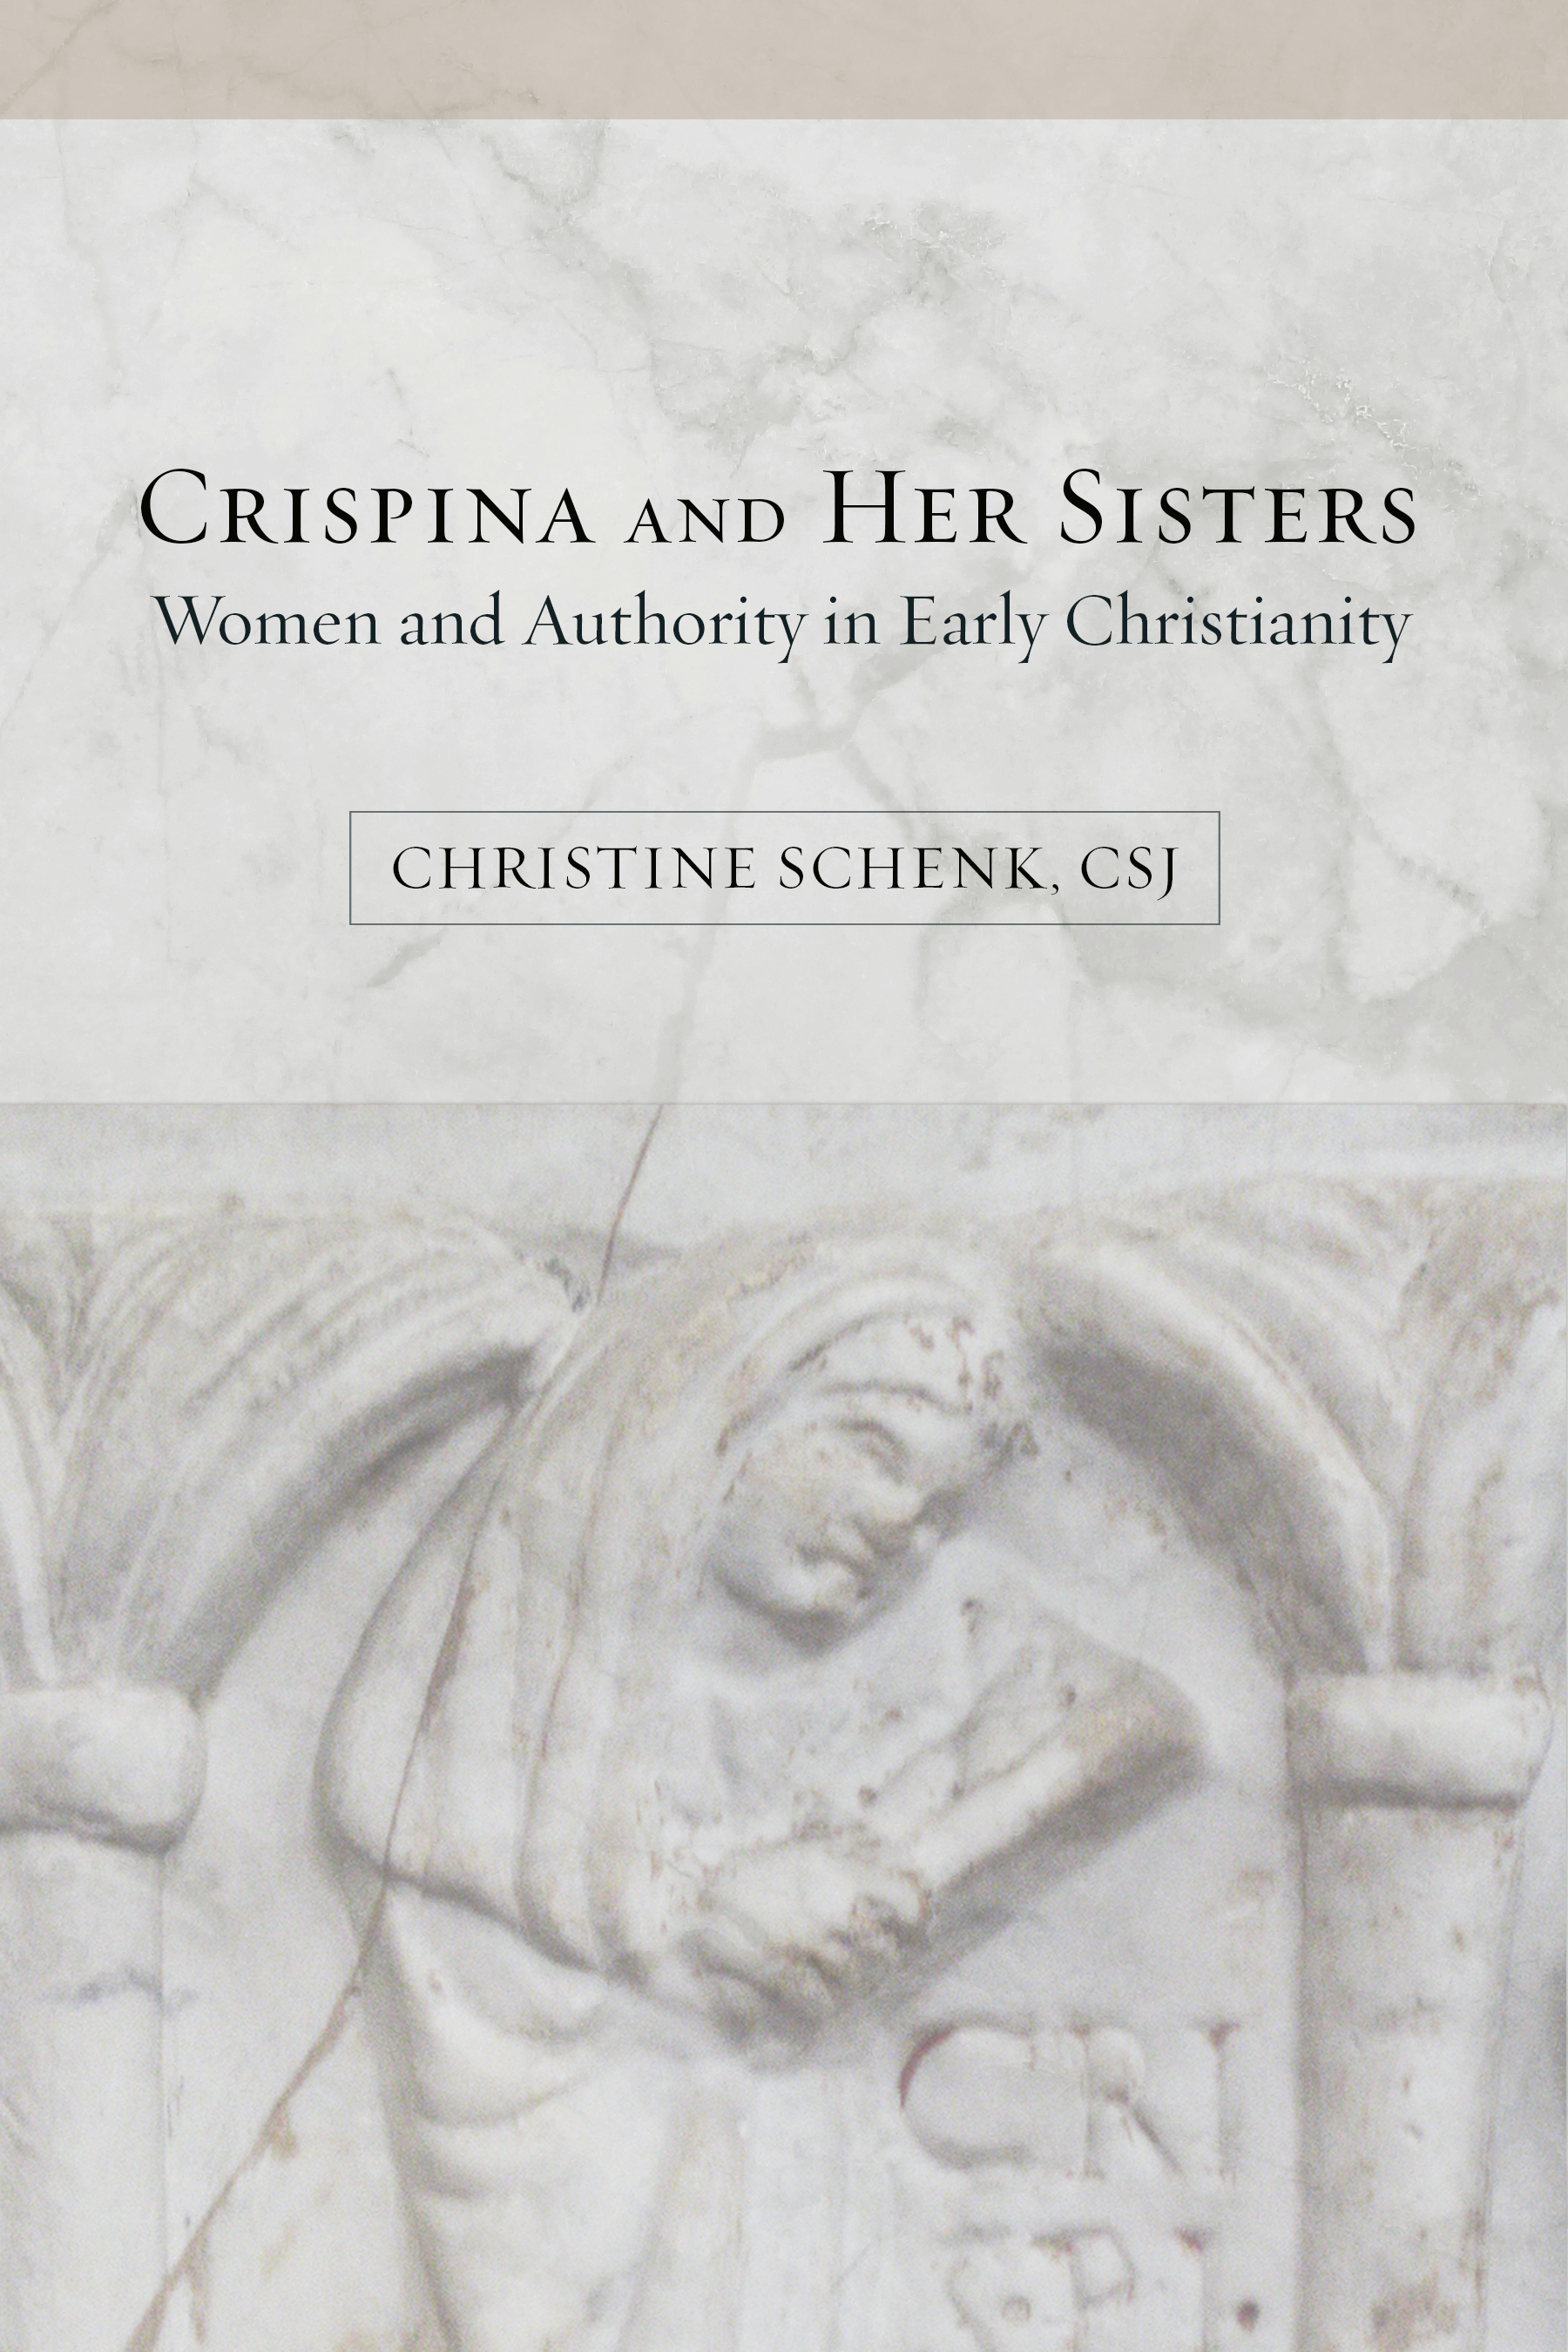 Crispina and Her Sisters: Women and Authority in Early Christianity by Christine Schenk, CSJ